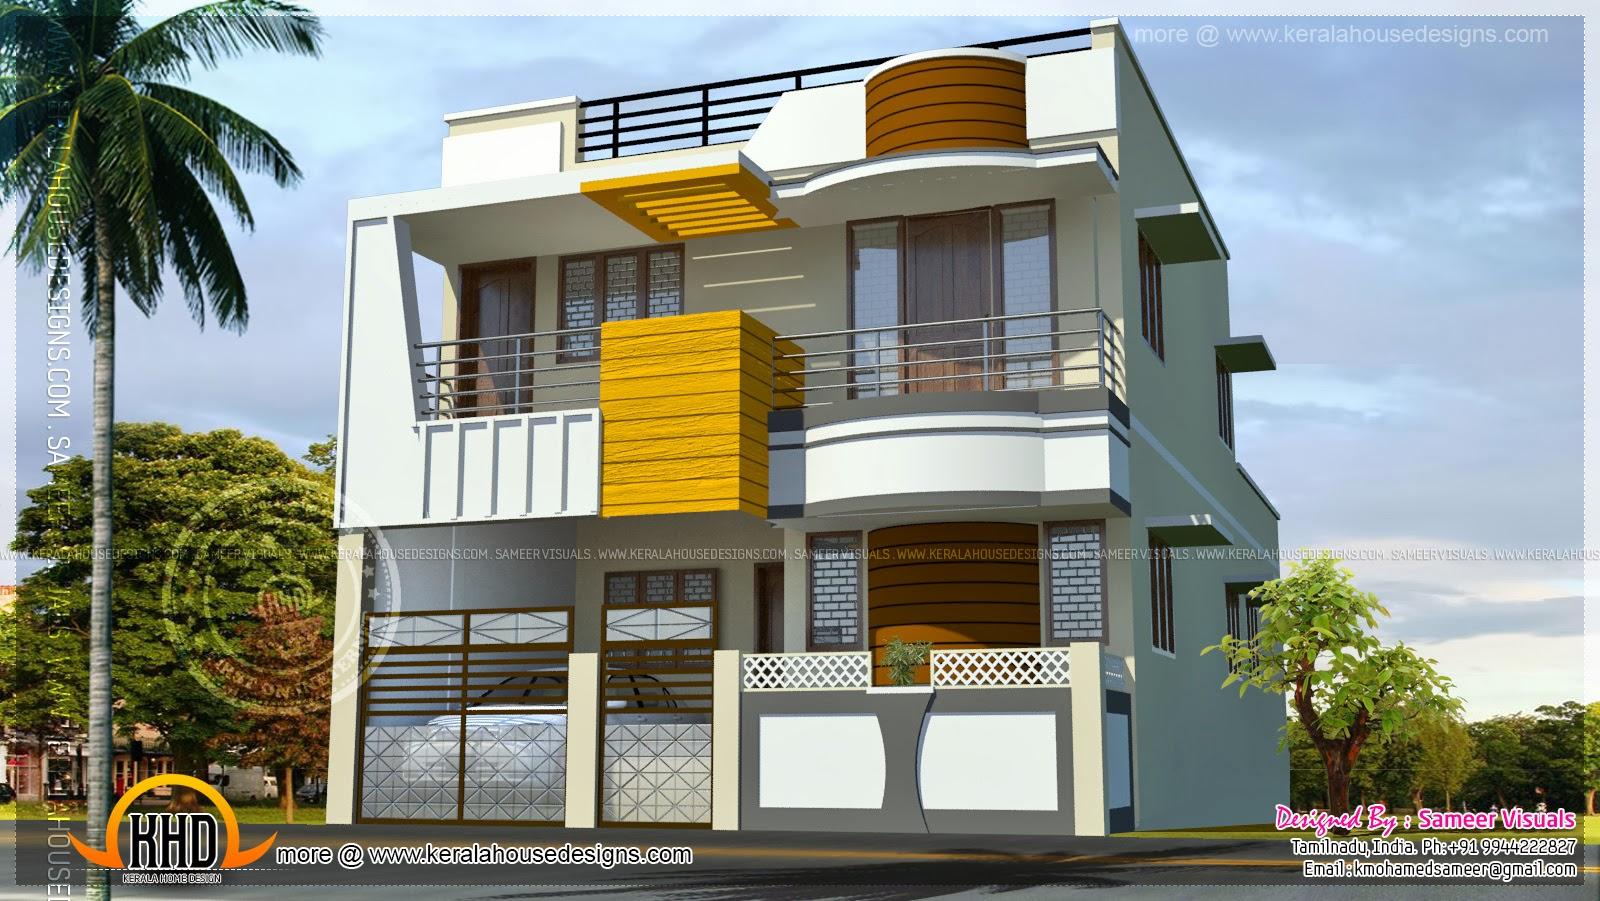 Double storied modern south indian home kerala home for South indian small house designs